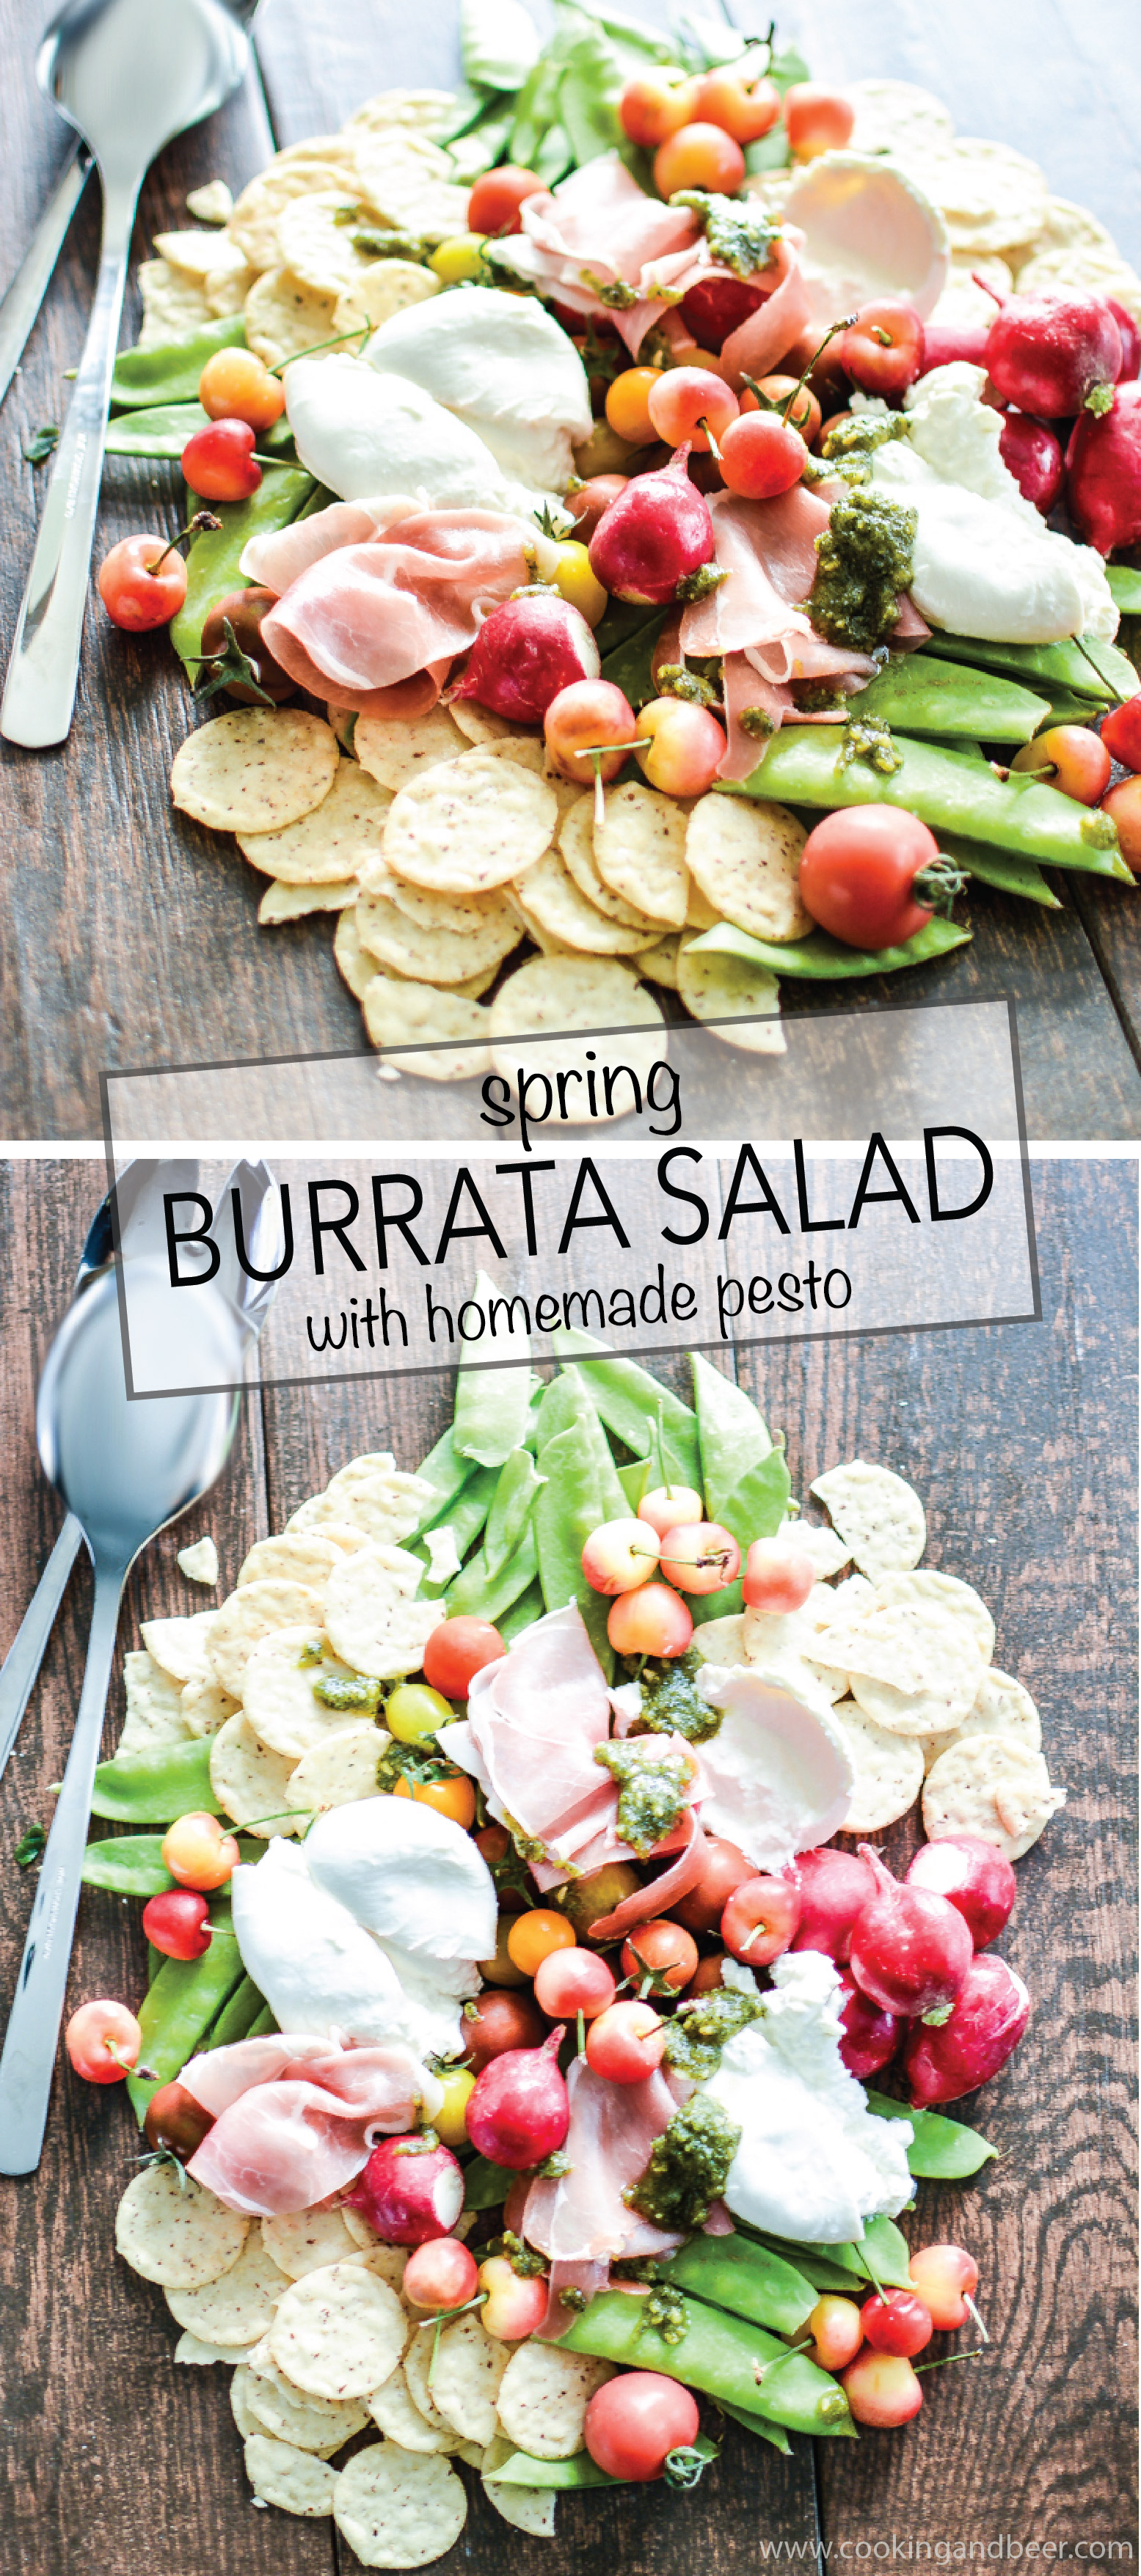 Spring Burrata Salad with Homemade Pesto is a refreshing and delicious way to celebrate spring!